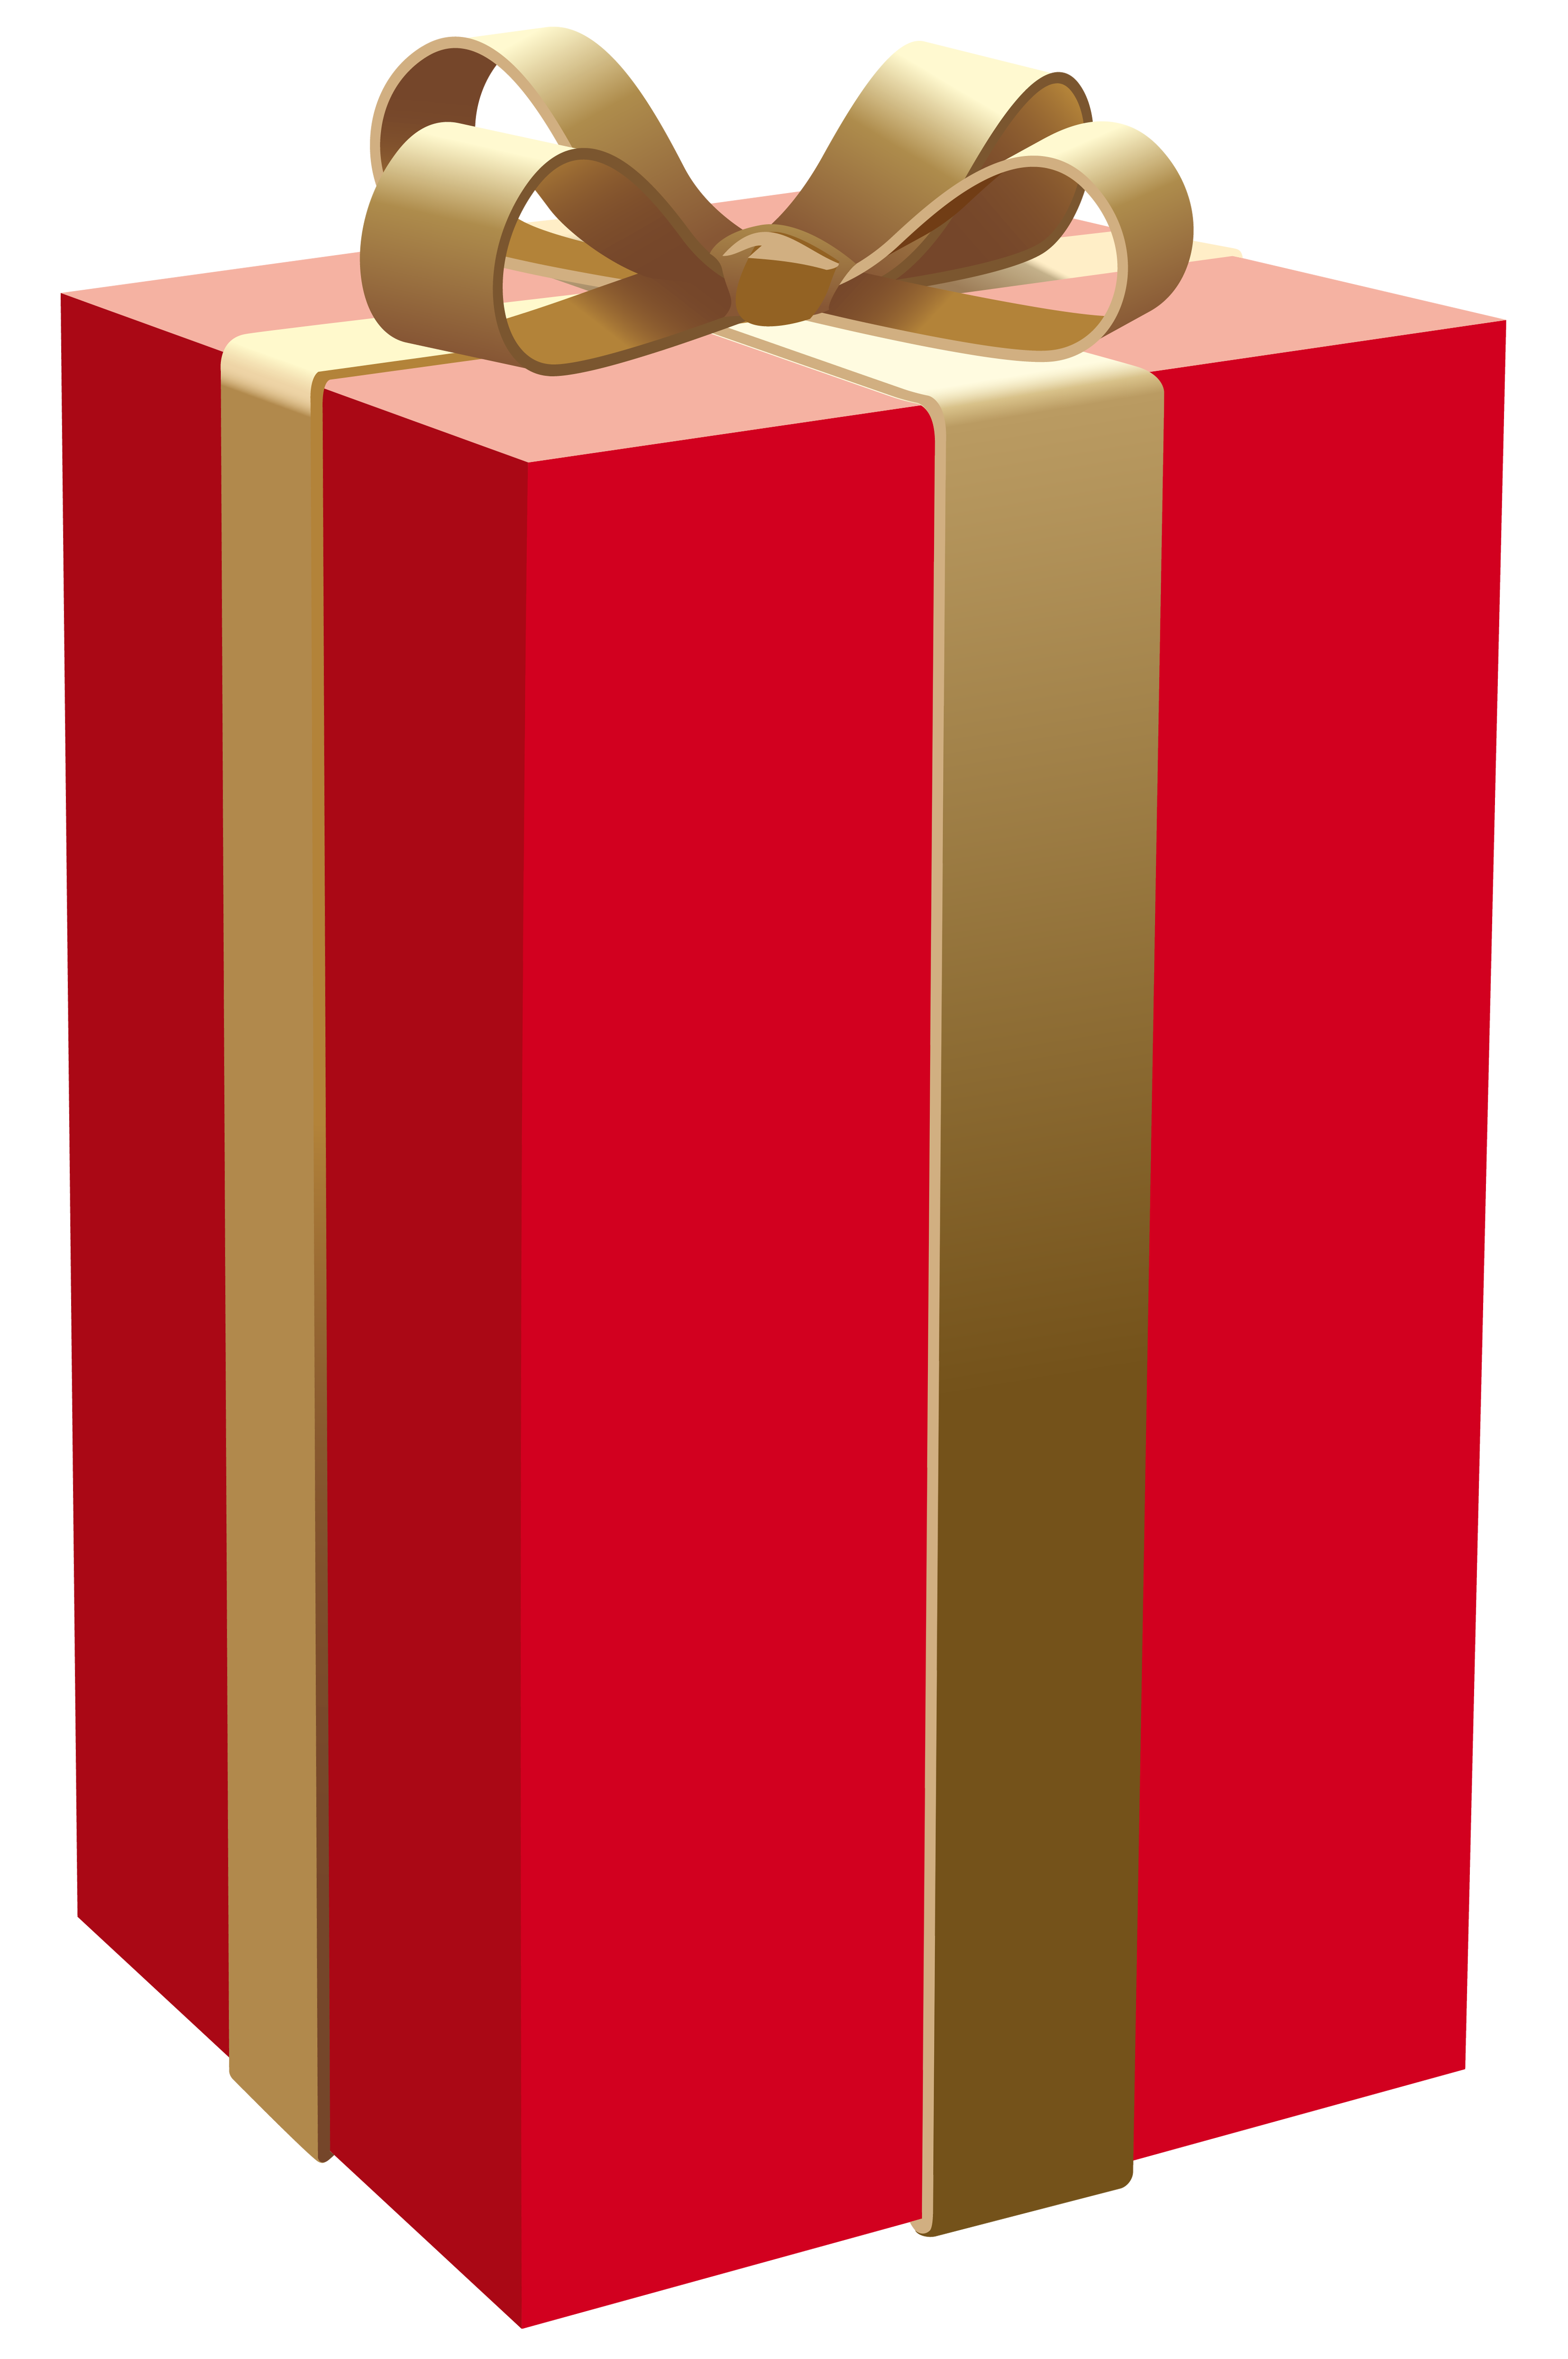 Red gift png best. Clipart box rectangular box